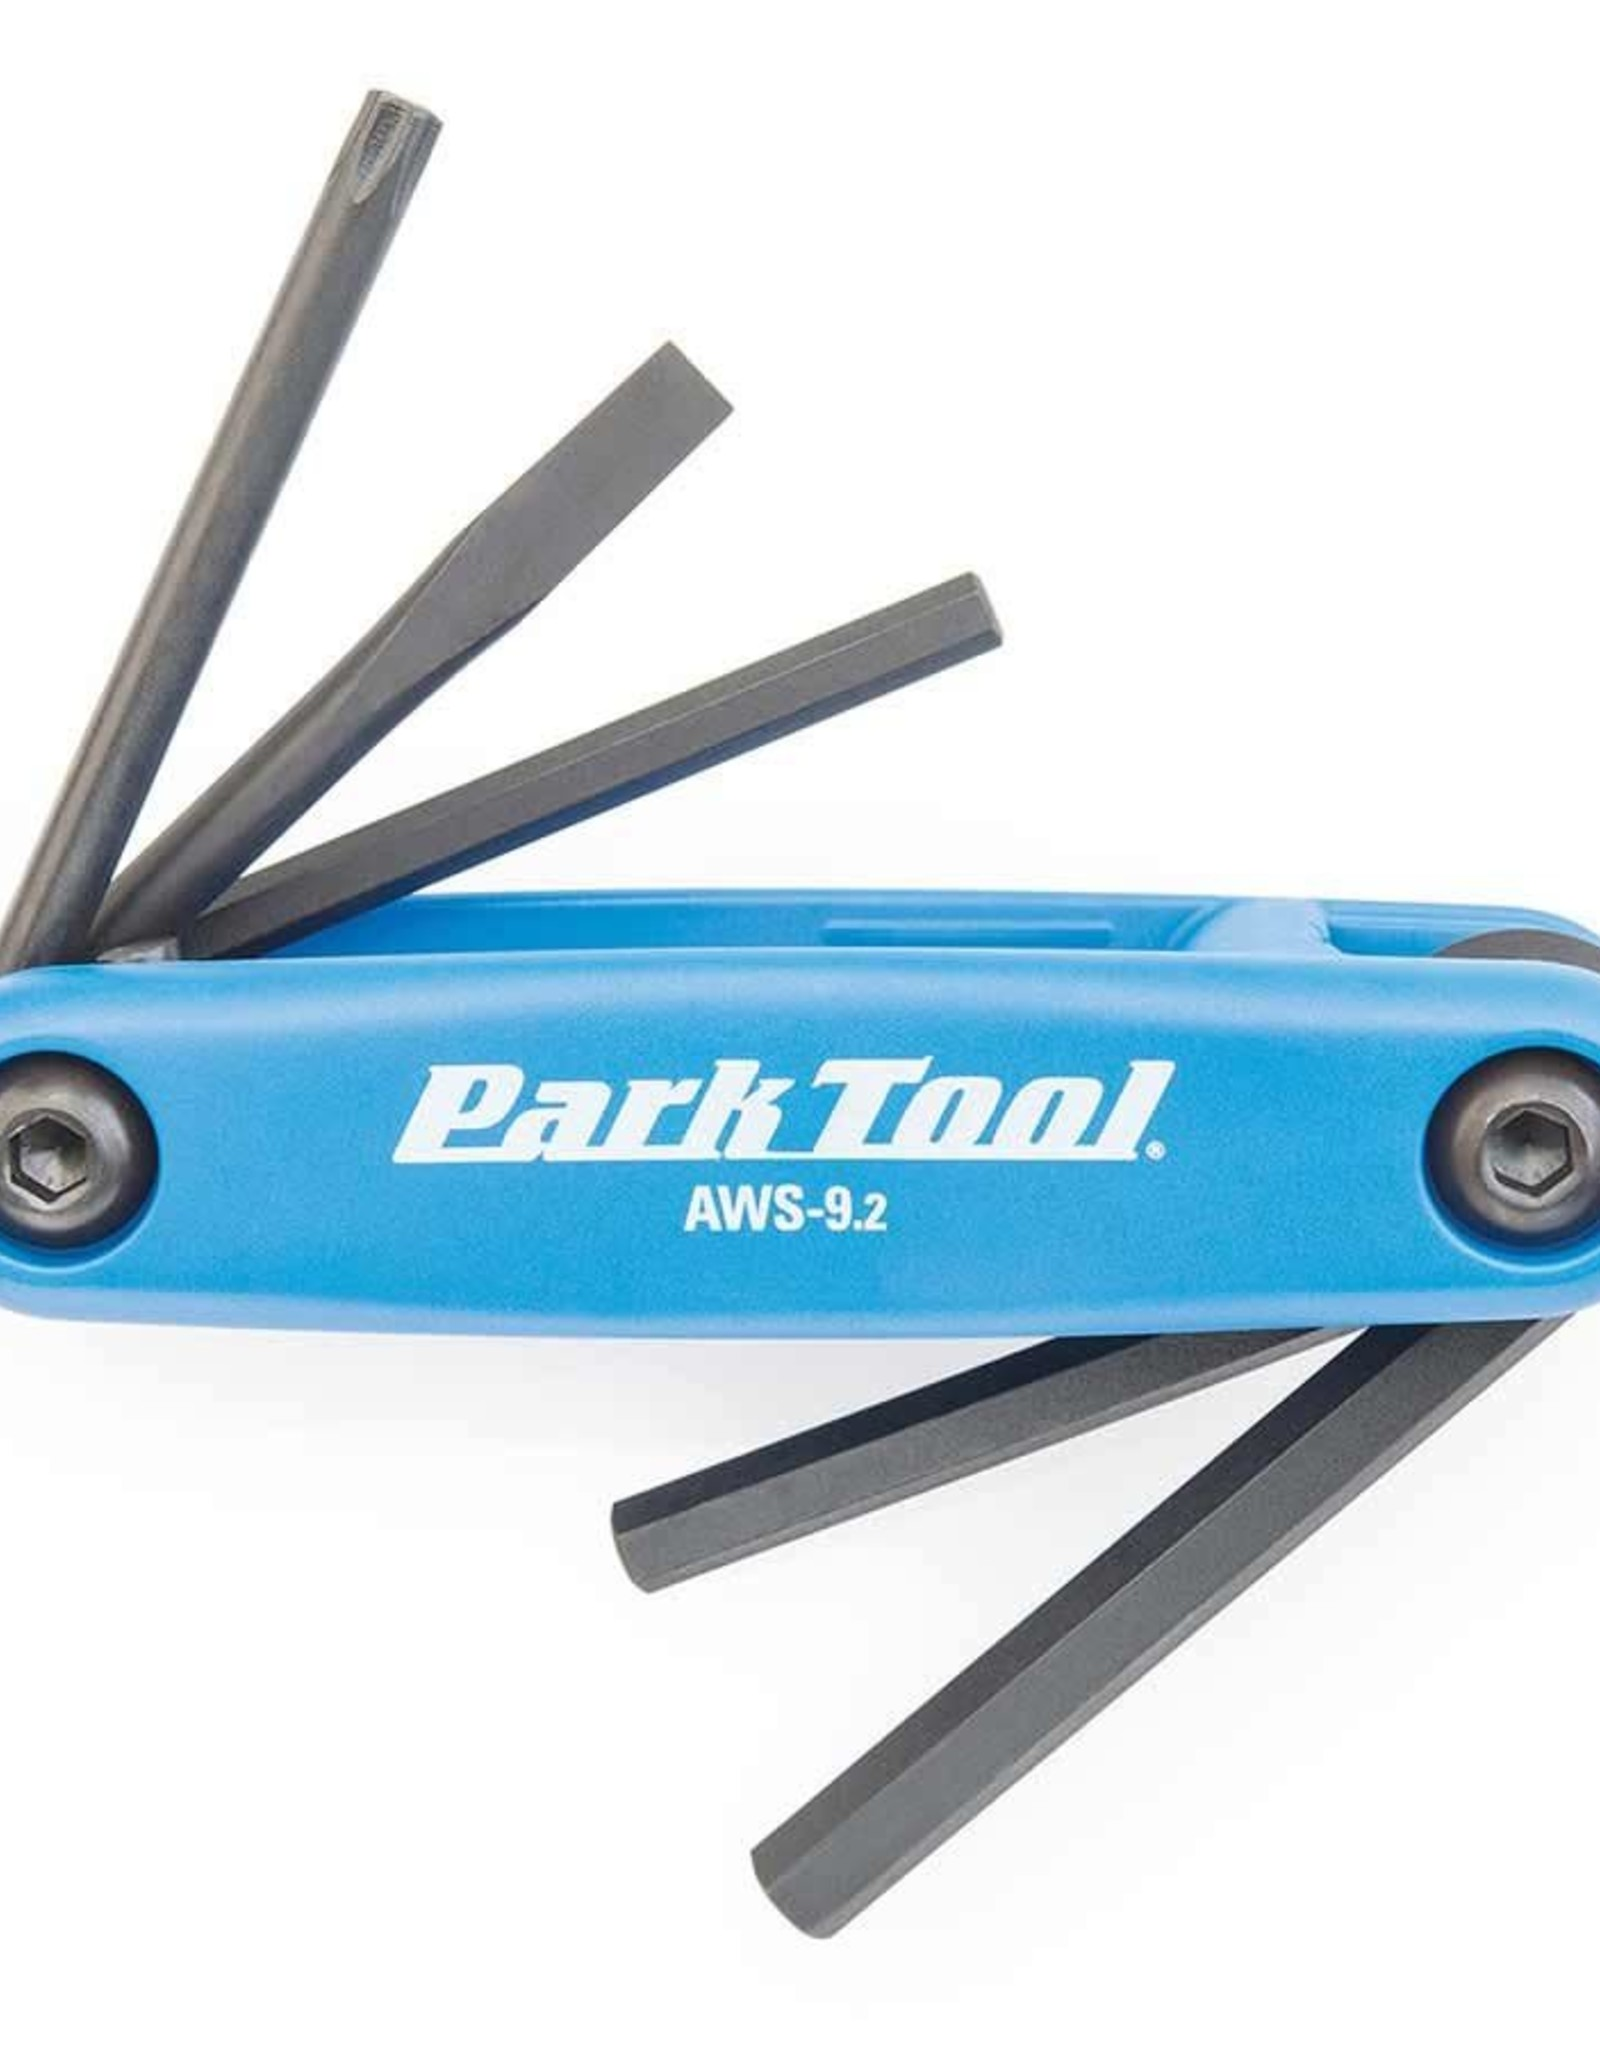 Park Tool Park Tl, AWS-9.2, Flding screwdriver/ hex wrench set, 4mm, 5mm, 6mm, Flat blade and T25